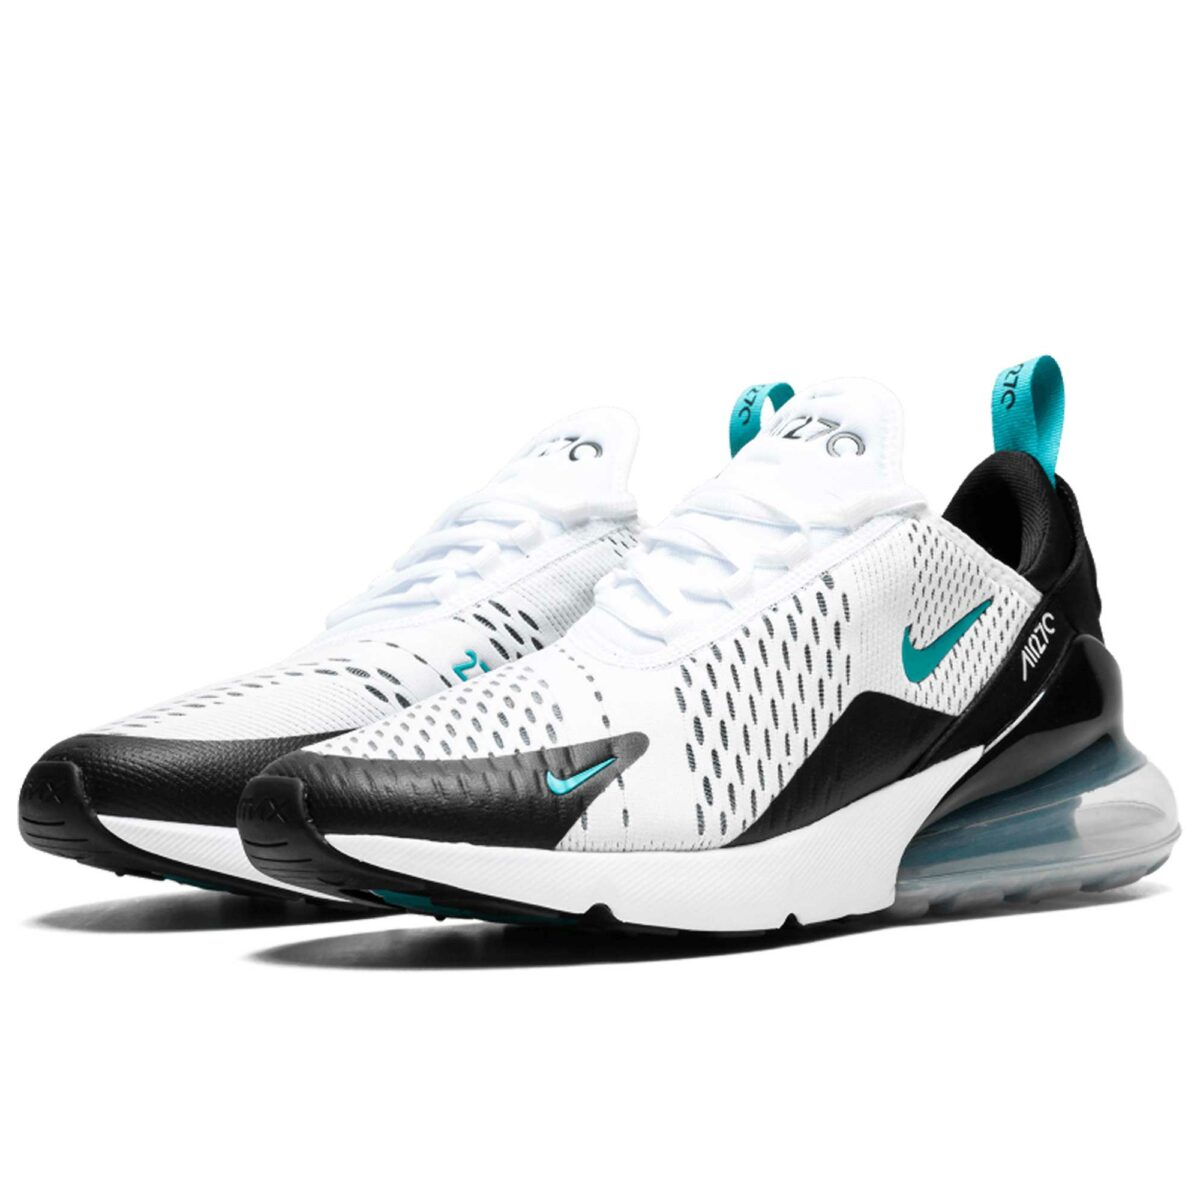 nike air max 270 dusty cactus AH8050_001 купить